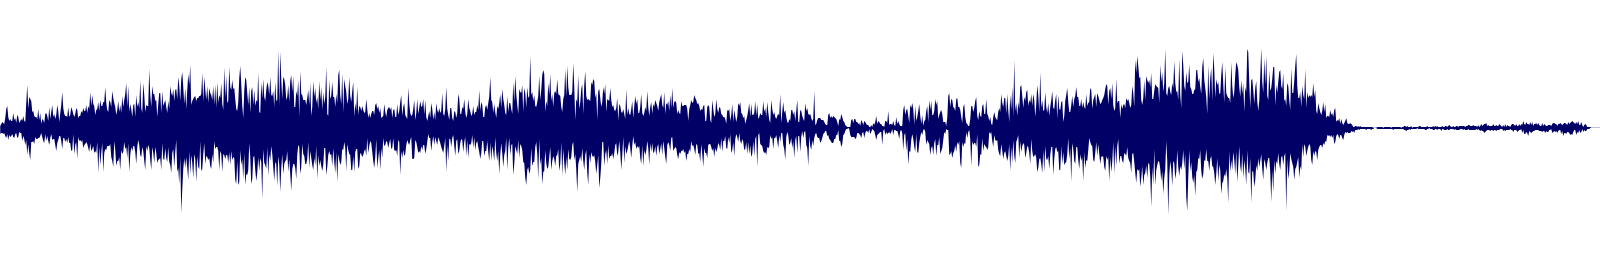 waveform of track #136258